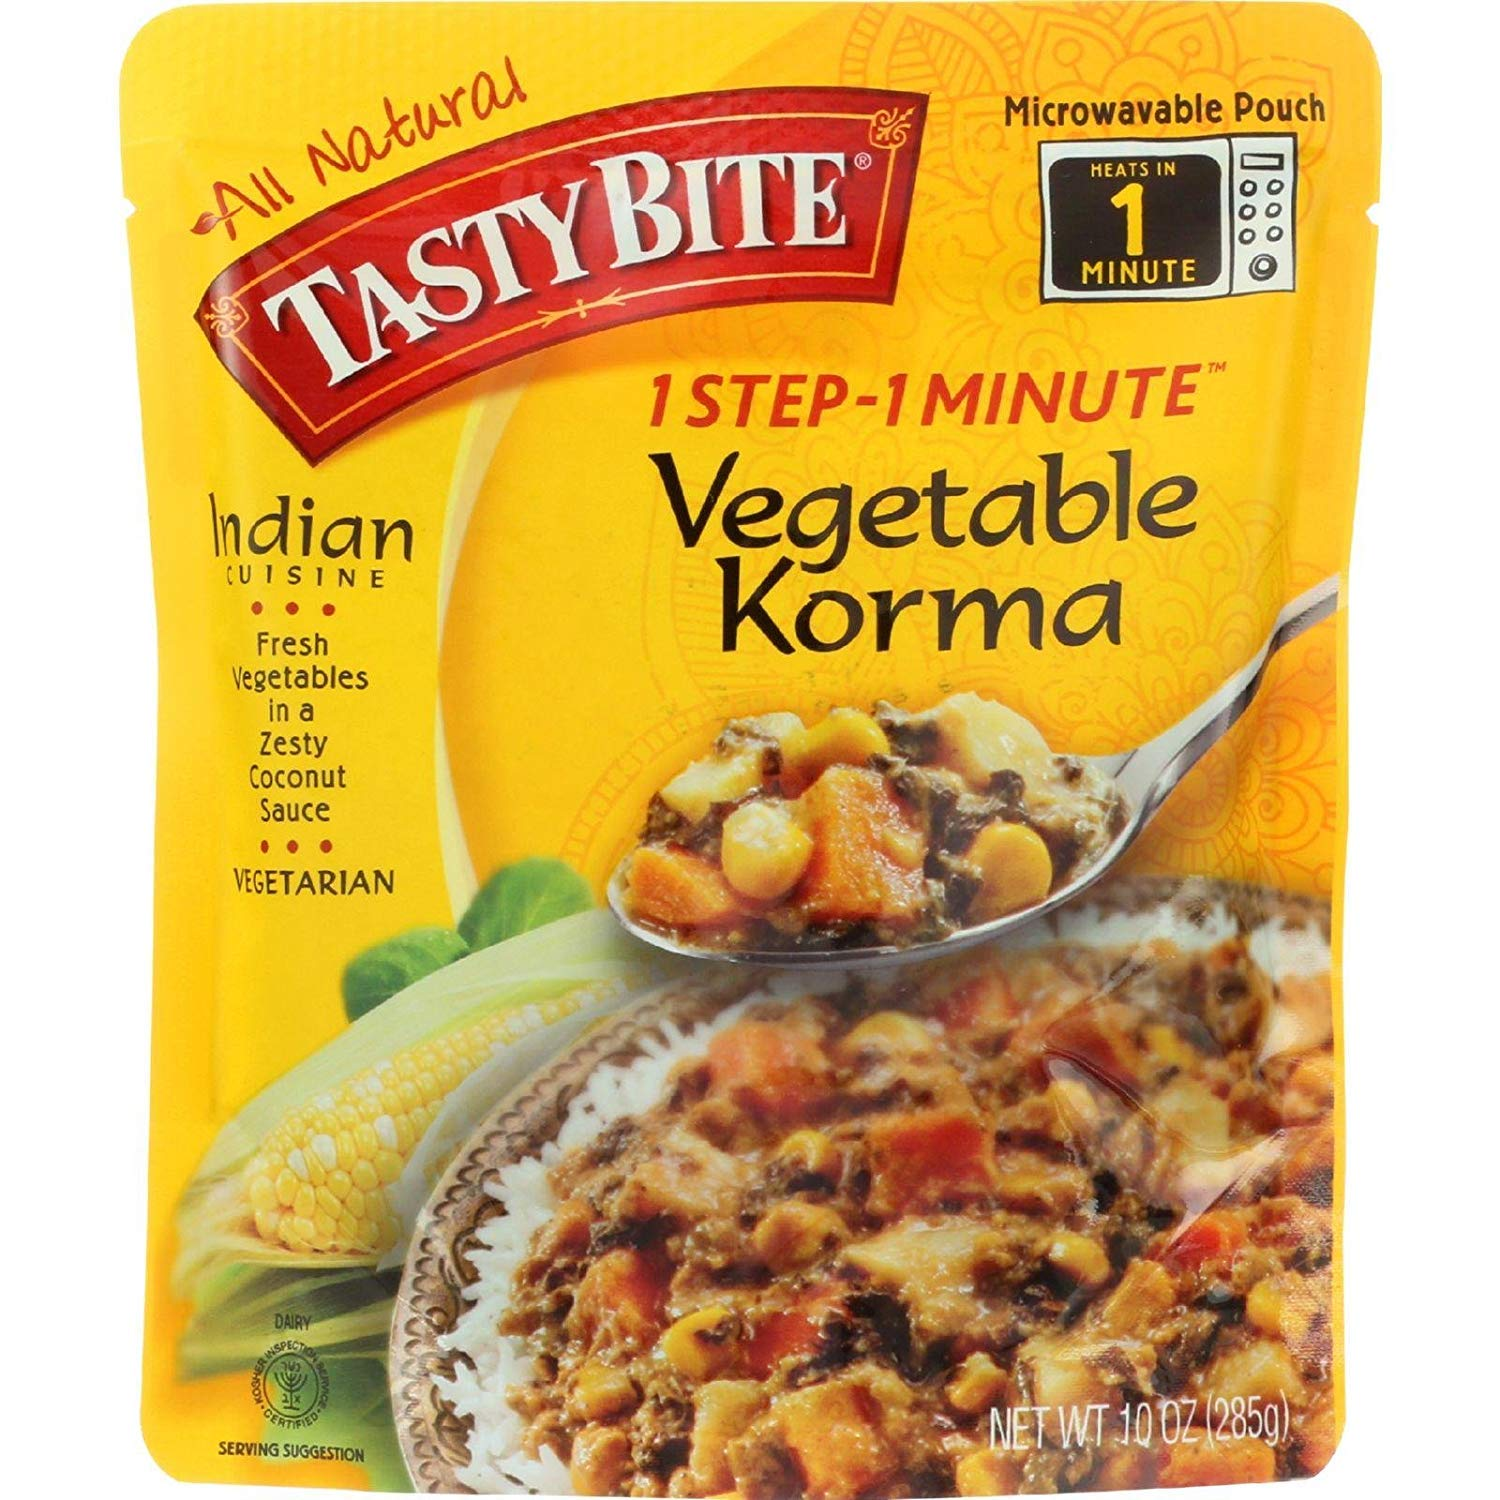 sold out Low price Tasty Bite vegetable Korma 6x10 Oz Entree